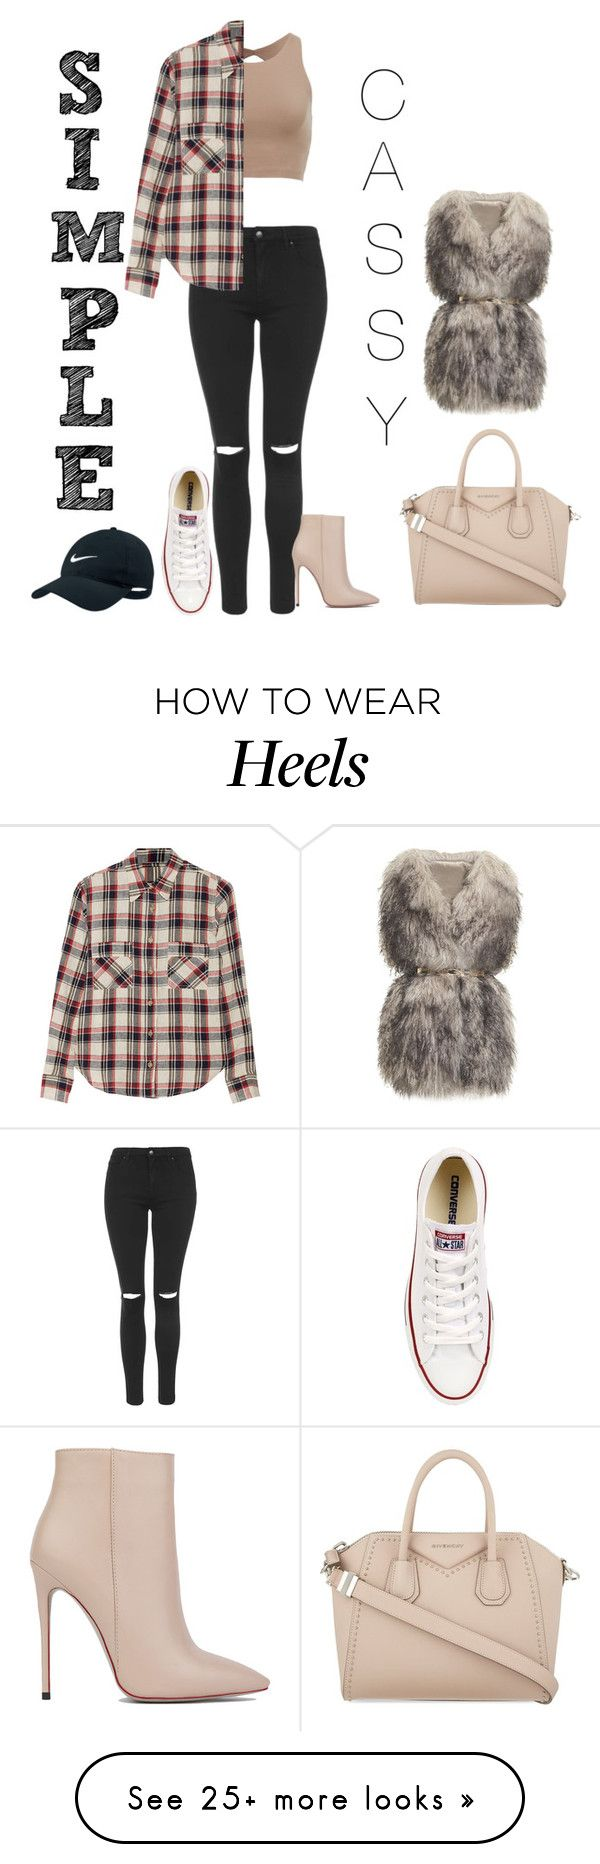 """Heels or casual #3"" by matildaemonet on Polyvore featuring Topshop, Akira Black Label, Étoile Isabel Marant, Converse, Givenchy, PINGHE and NIKE"